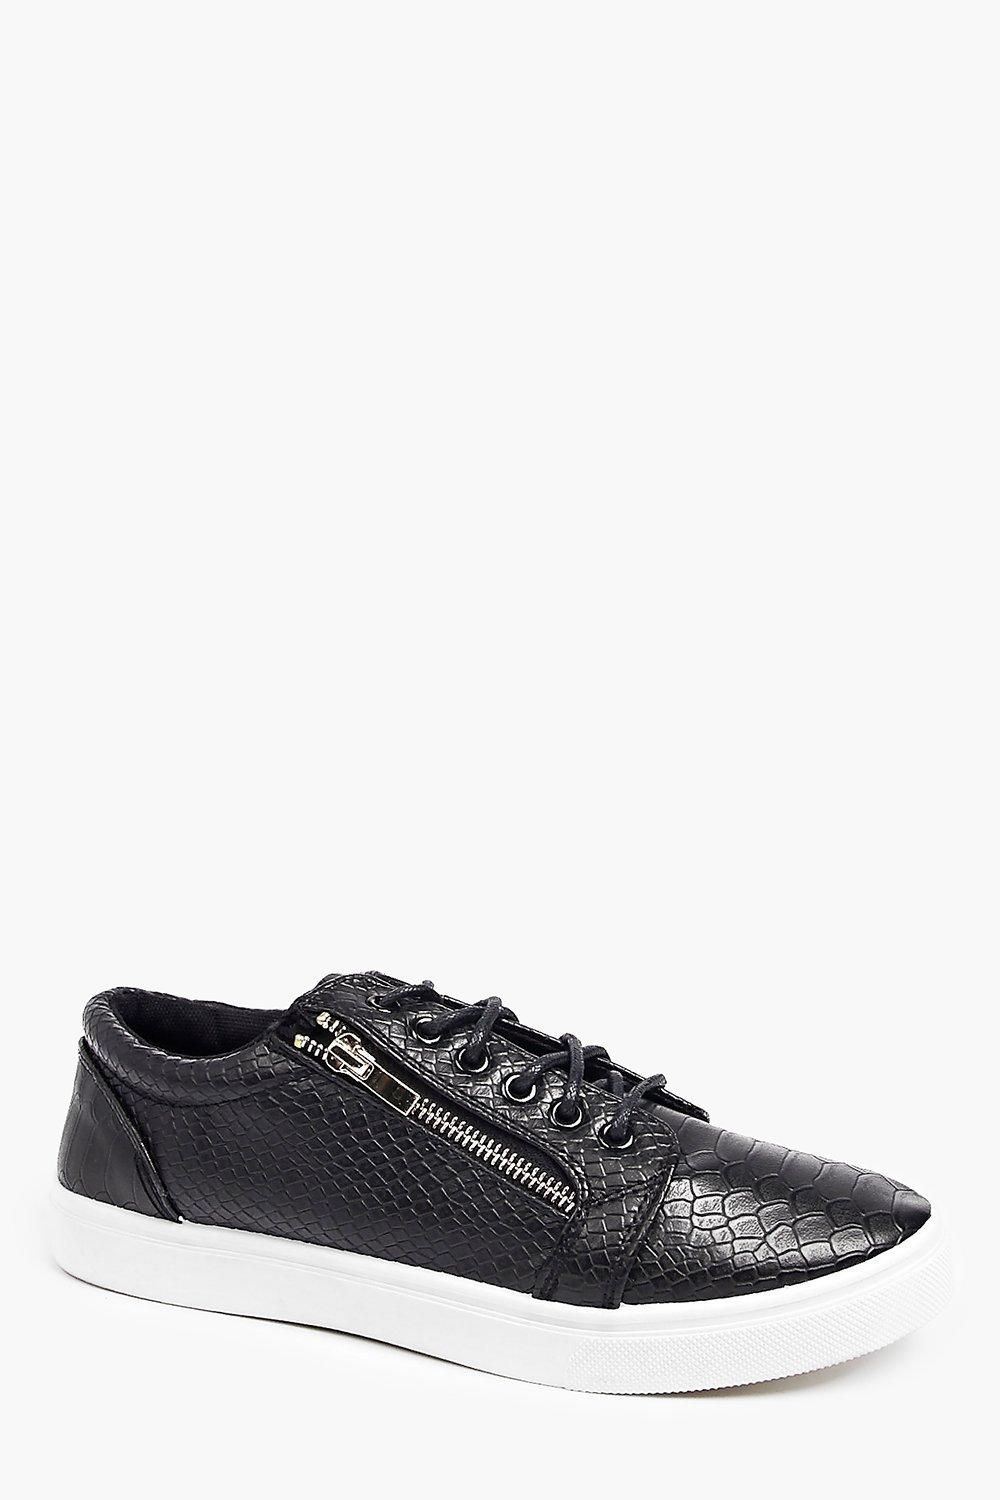 PU Croc Lace Up With Zip Details